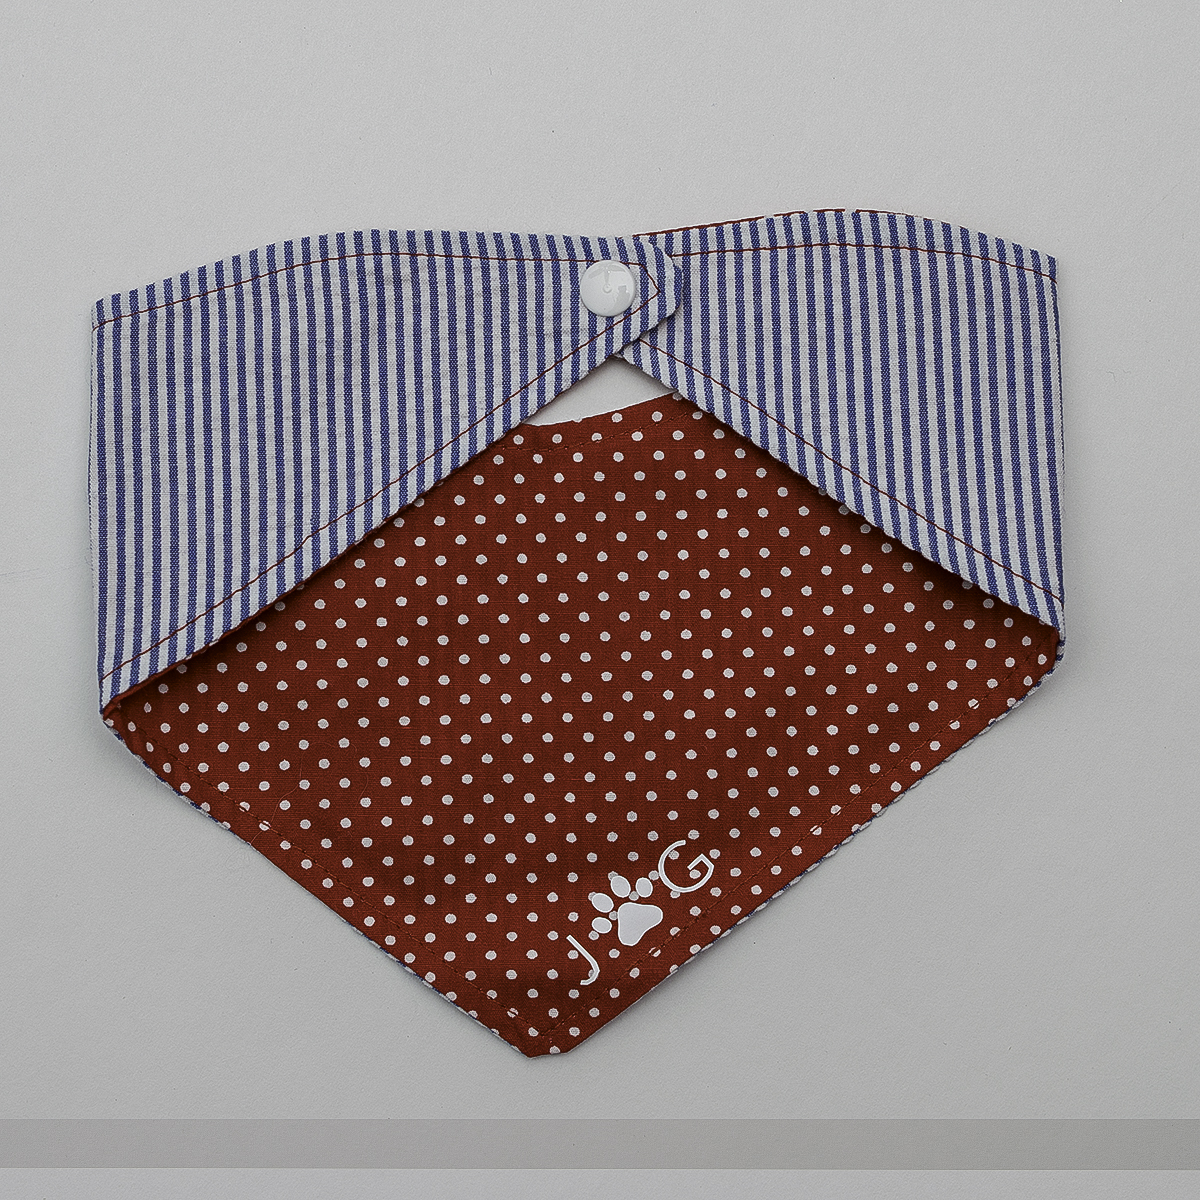 Josephine Grace Puppy Couture Maisy Bandana Front and Back